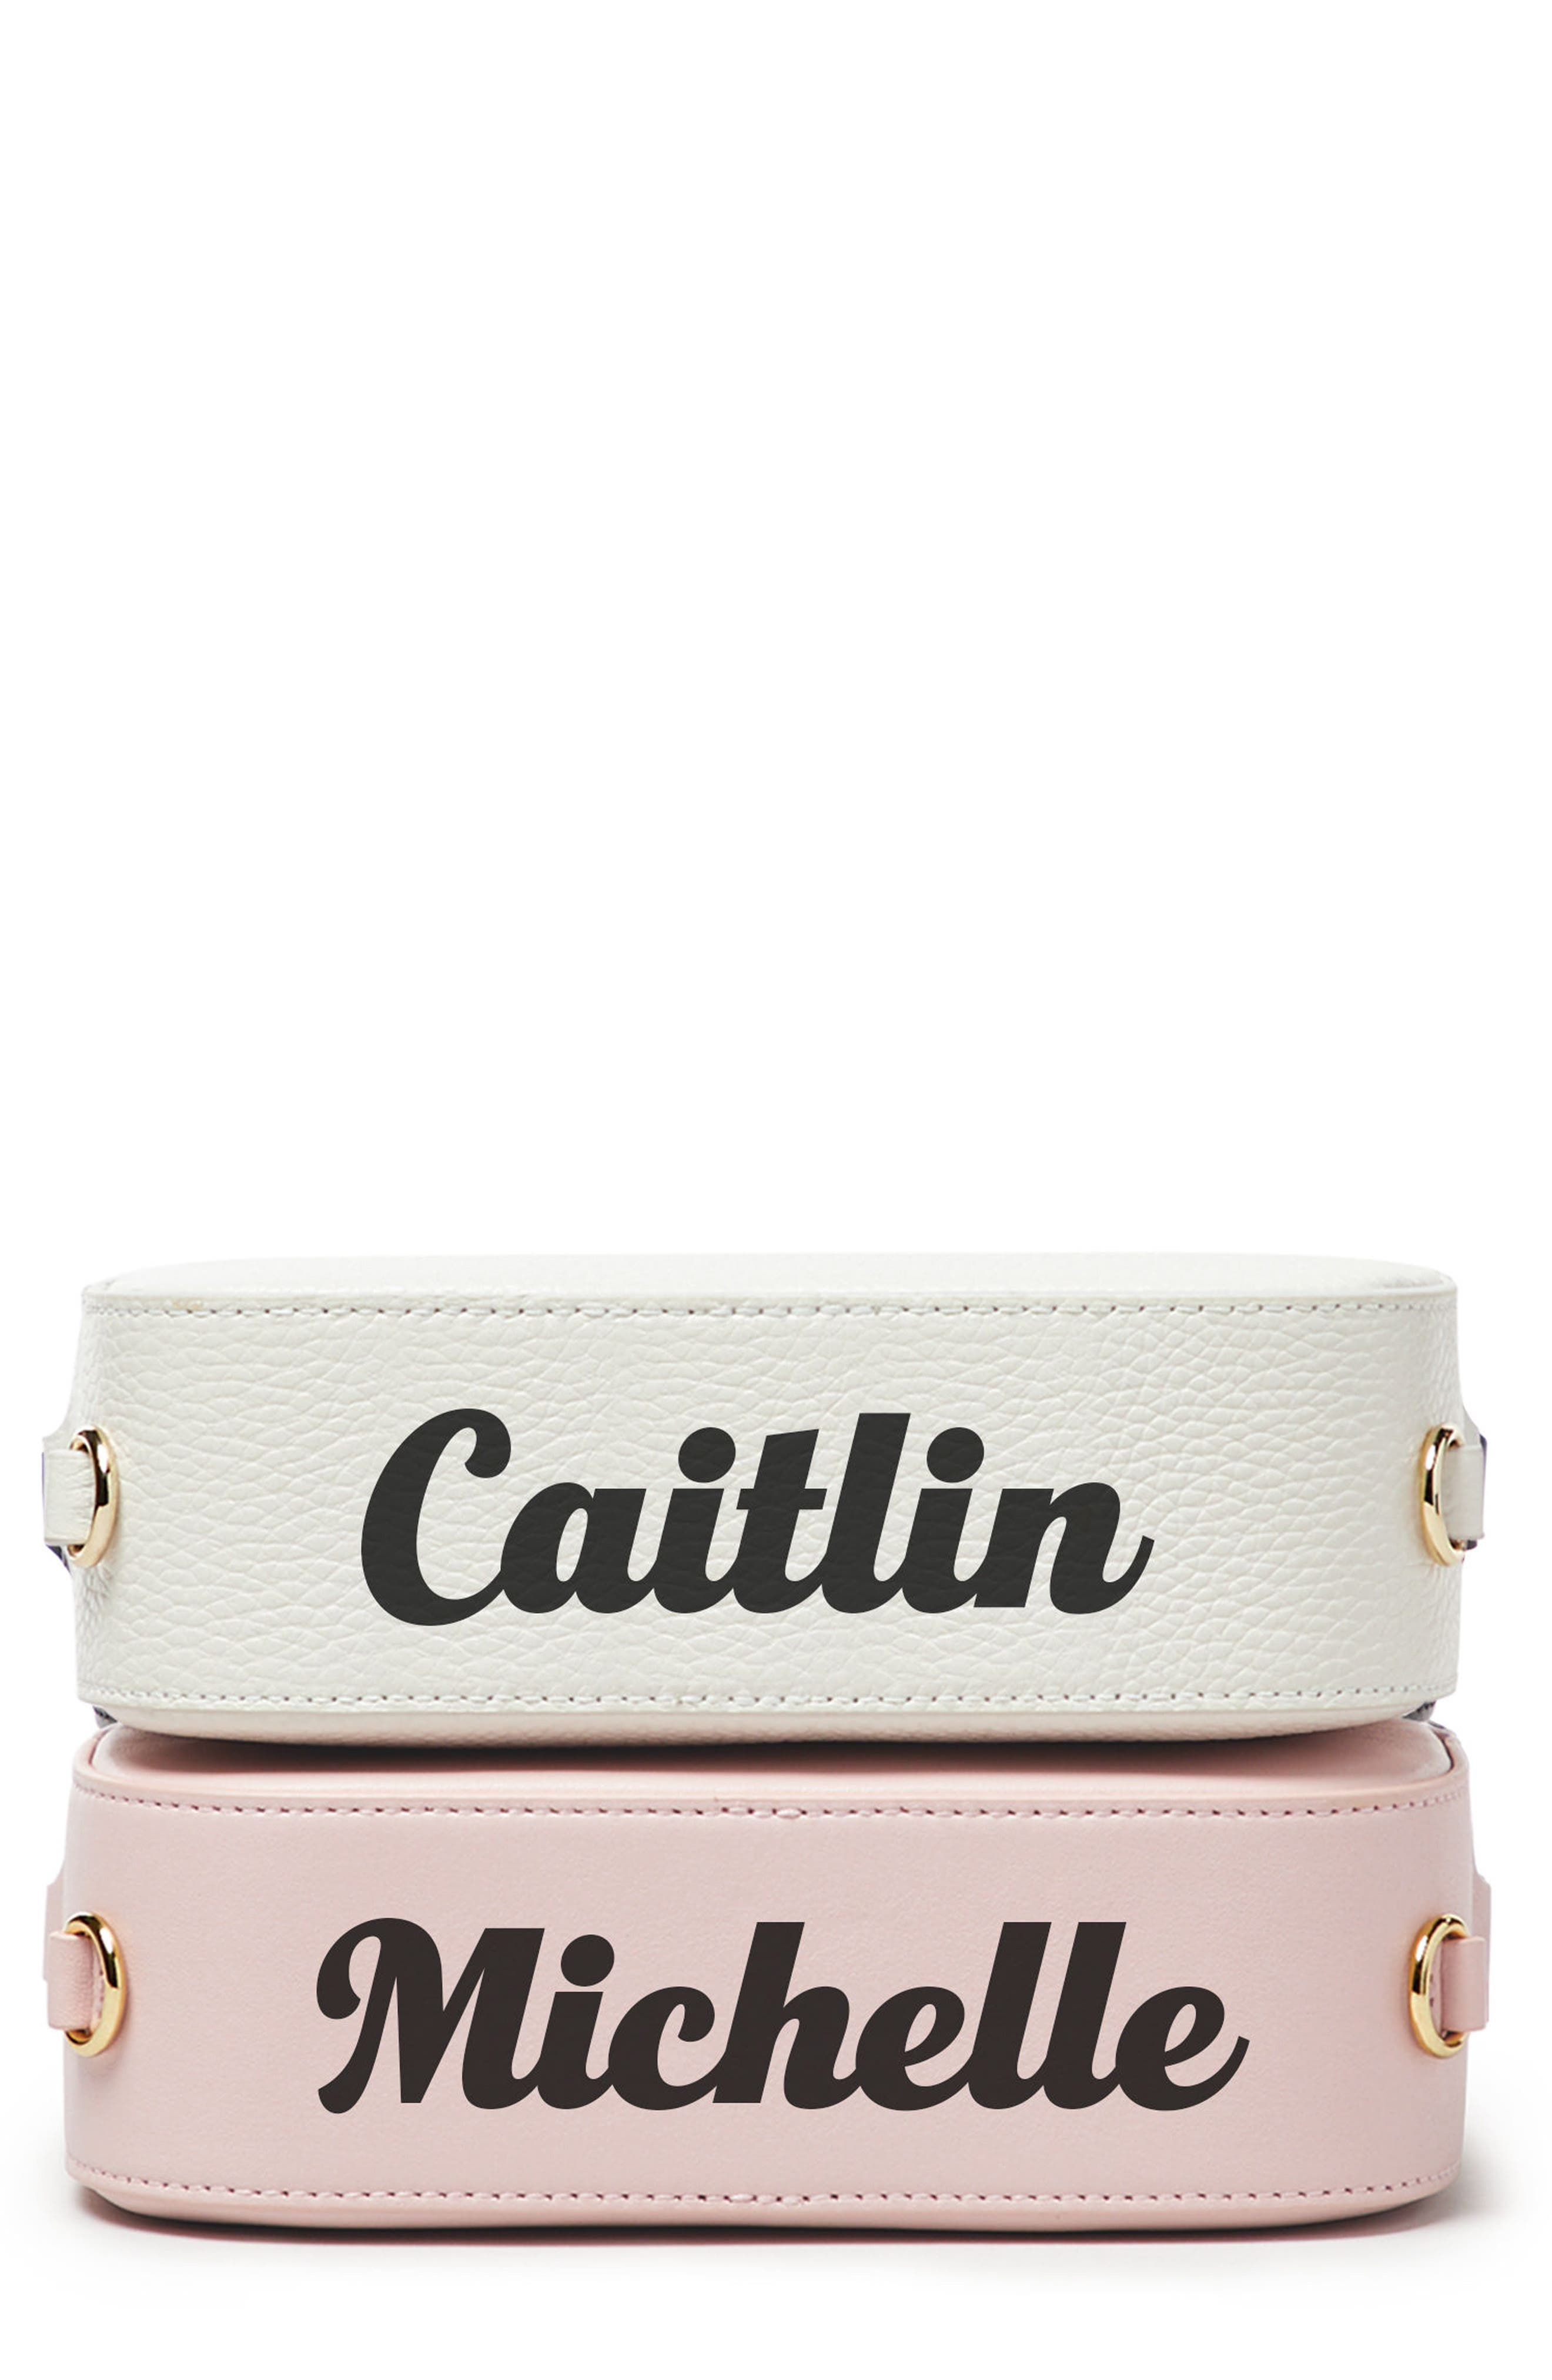 Main Image - Pop & Suki Personalized Leather Camera Bag (Nordstrom Exclusive)